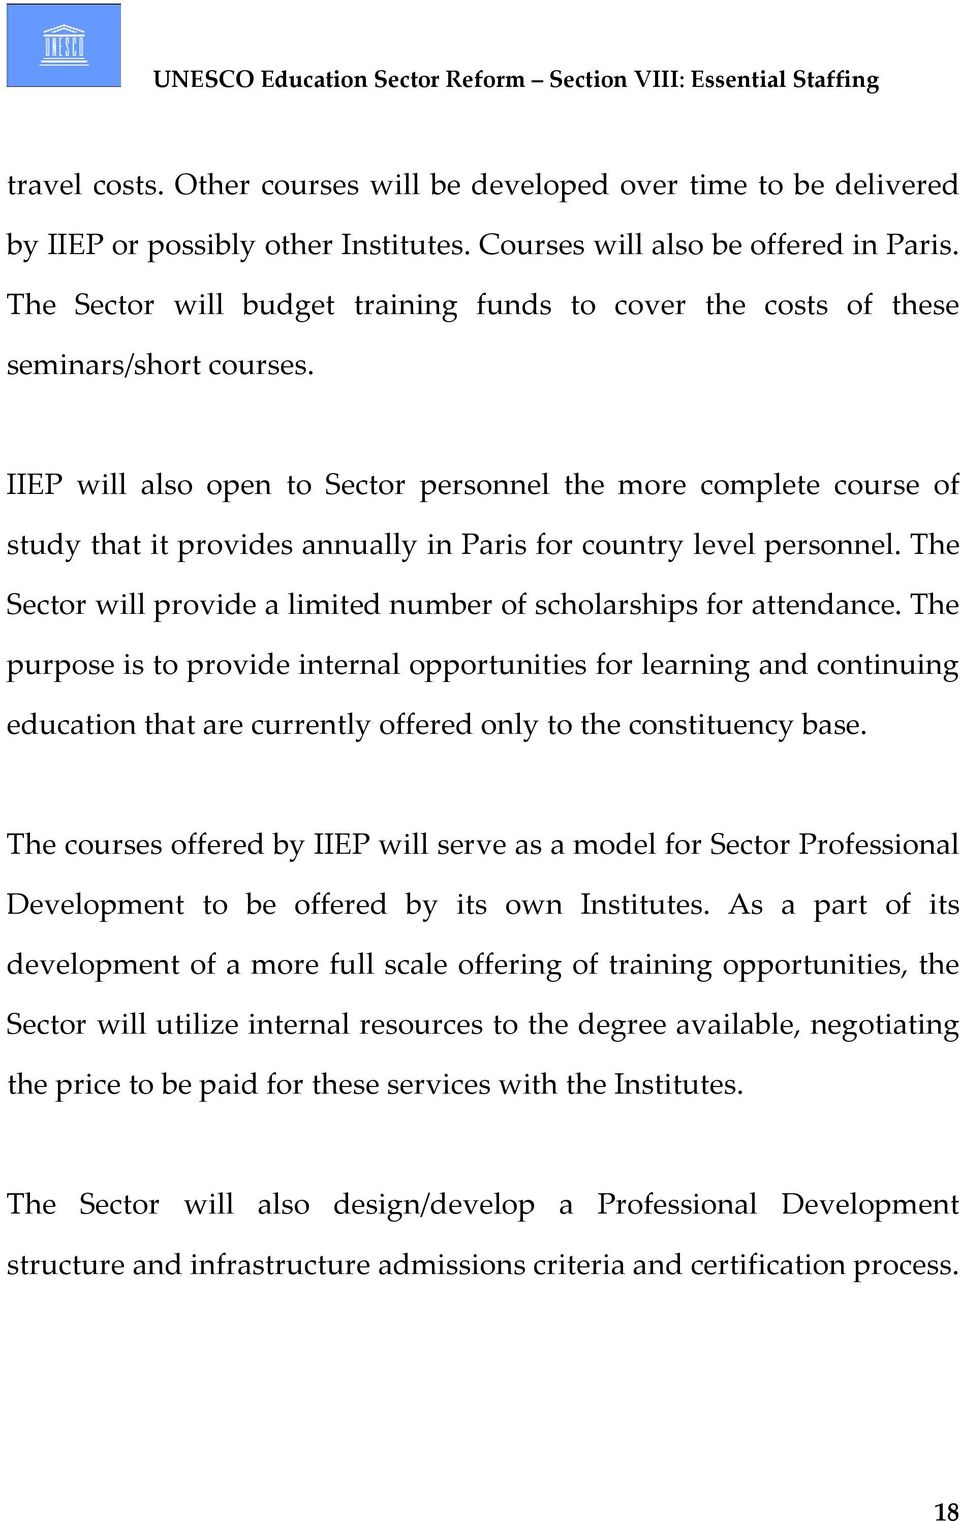 IIEP will also open to Sector personnel the more complete course of study that it provides annually in Paris for country level personnel.